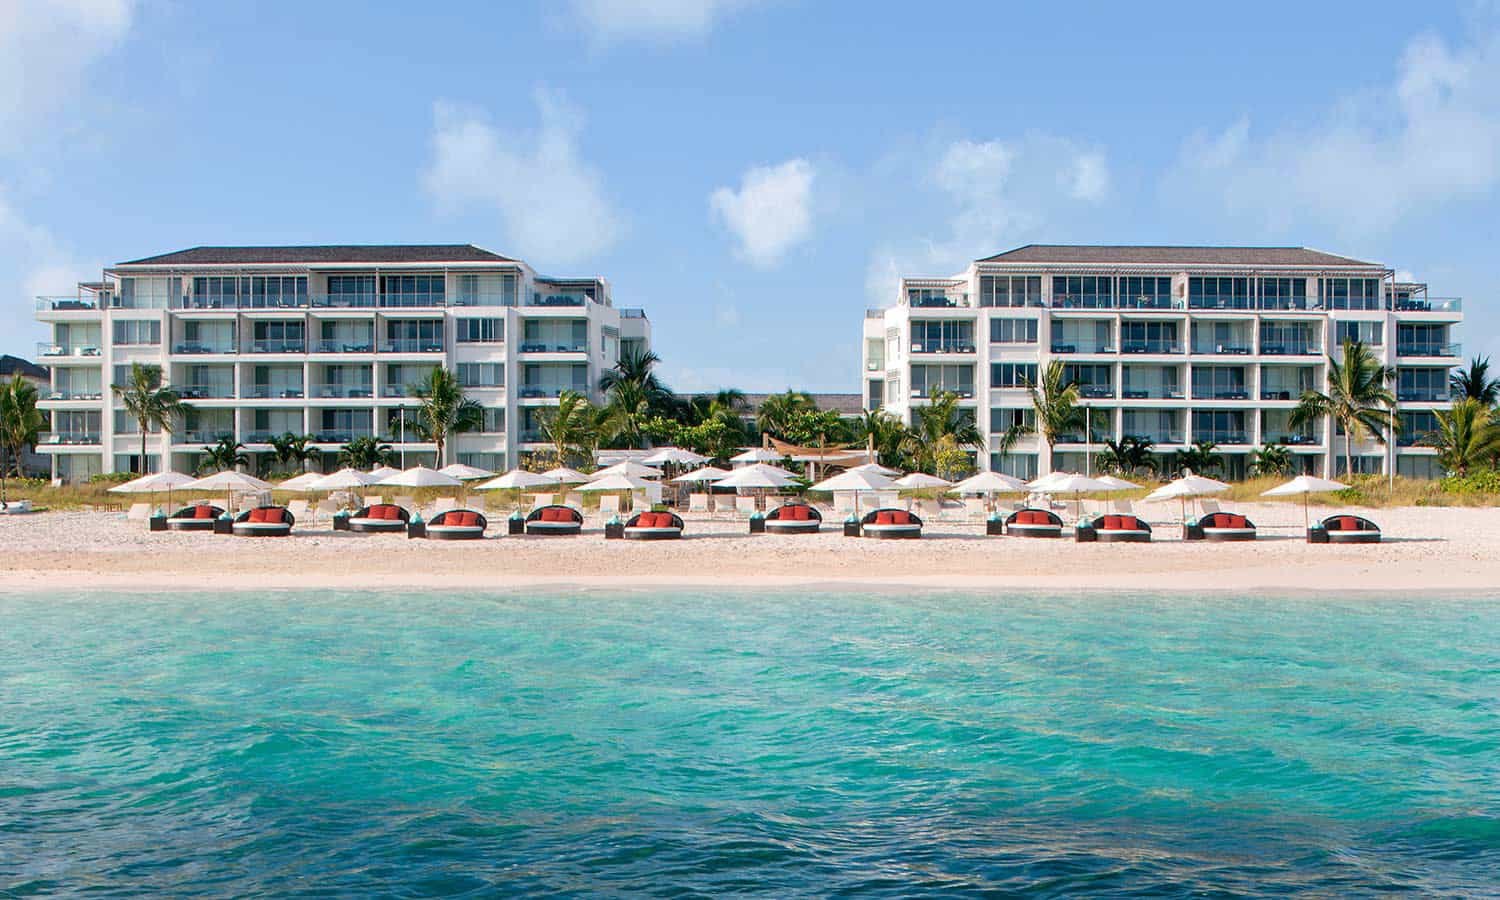 Gansevoort Turks & Caicos Hotel, Beach and Ocean View